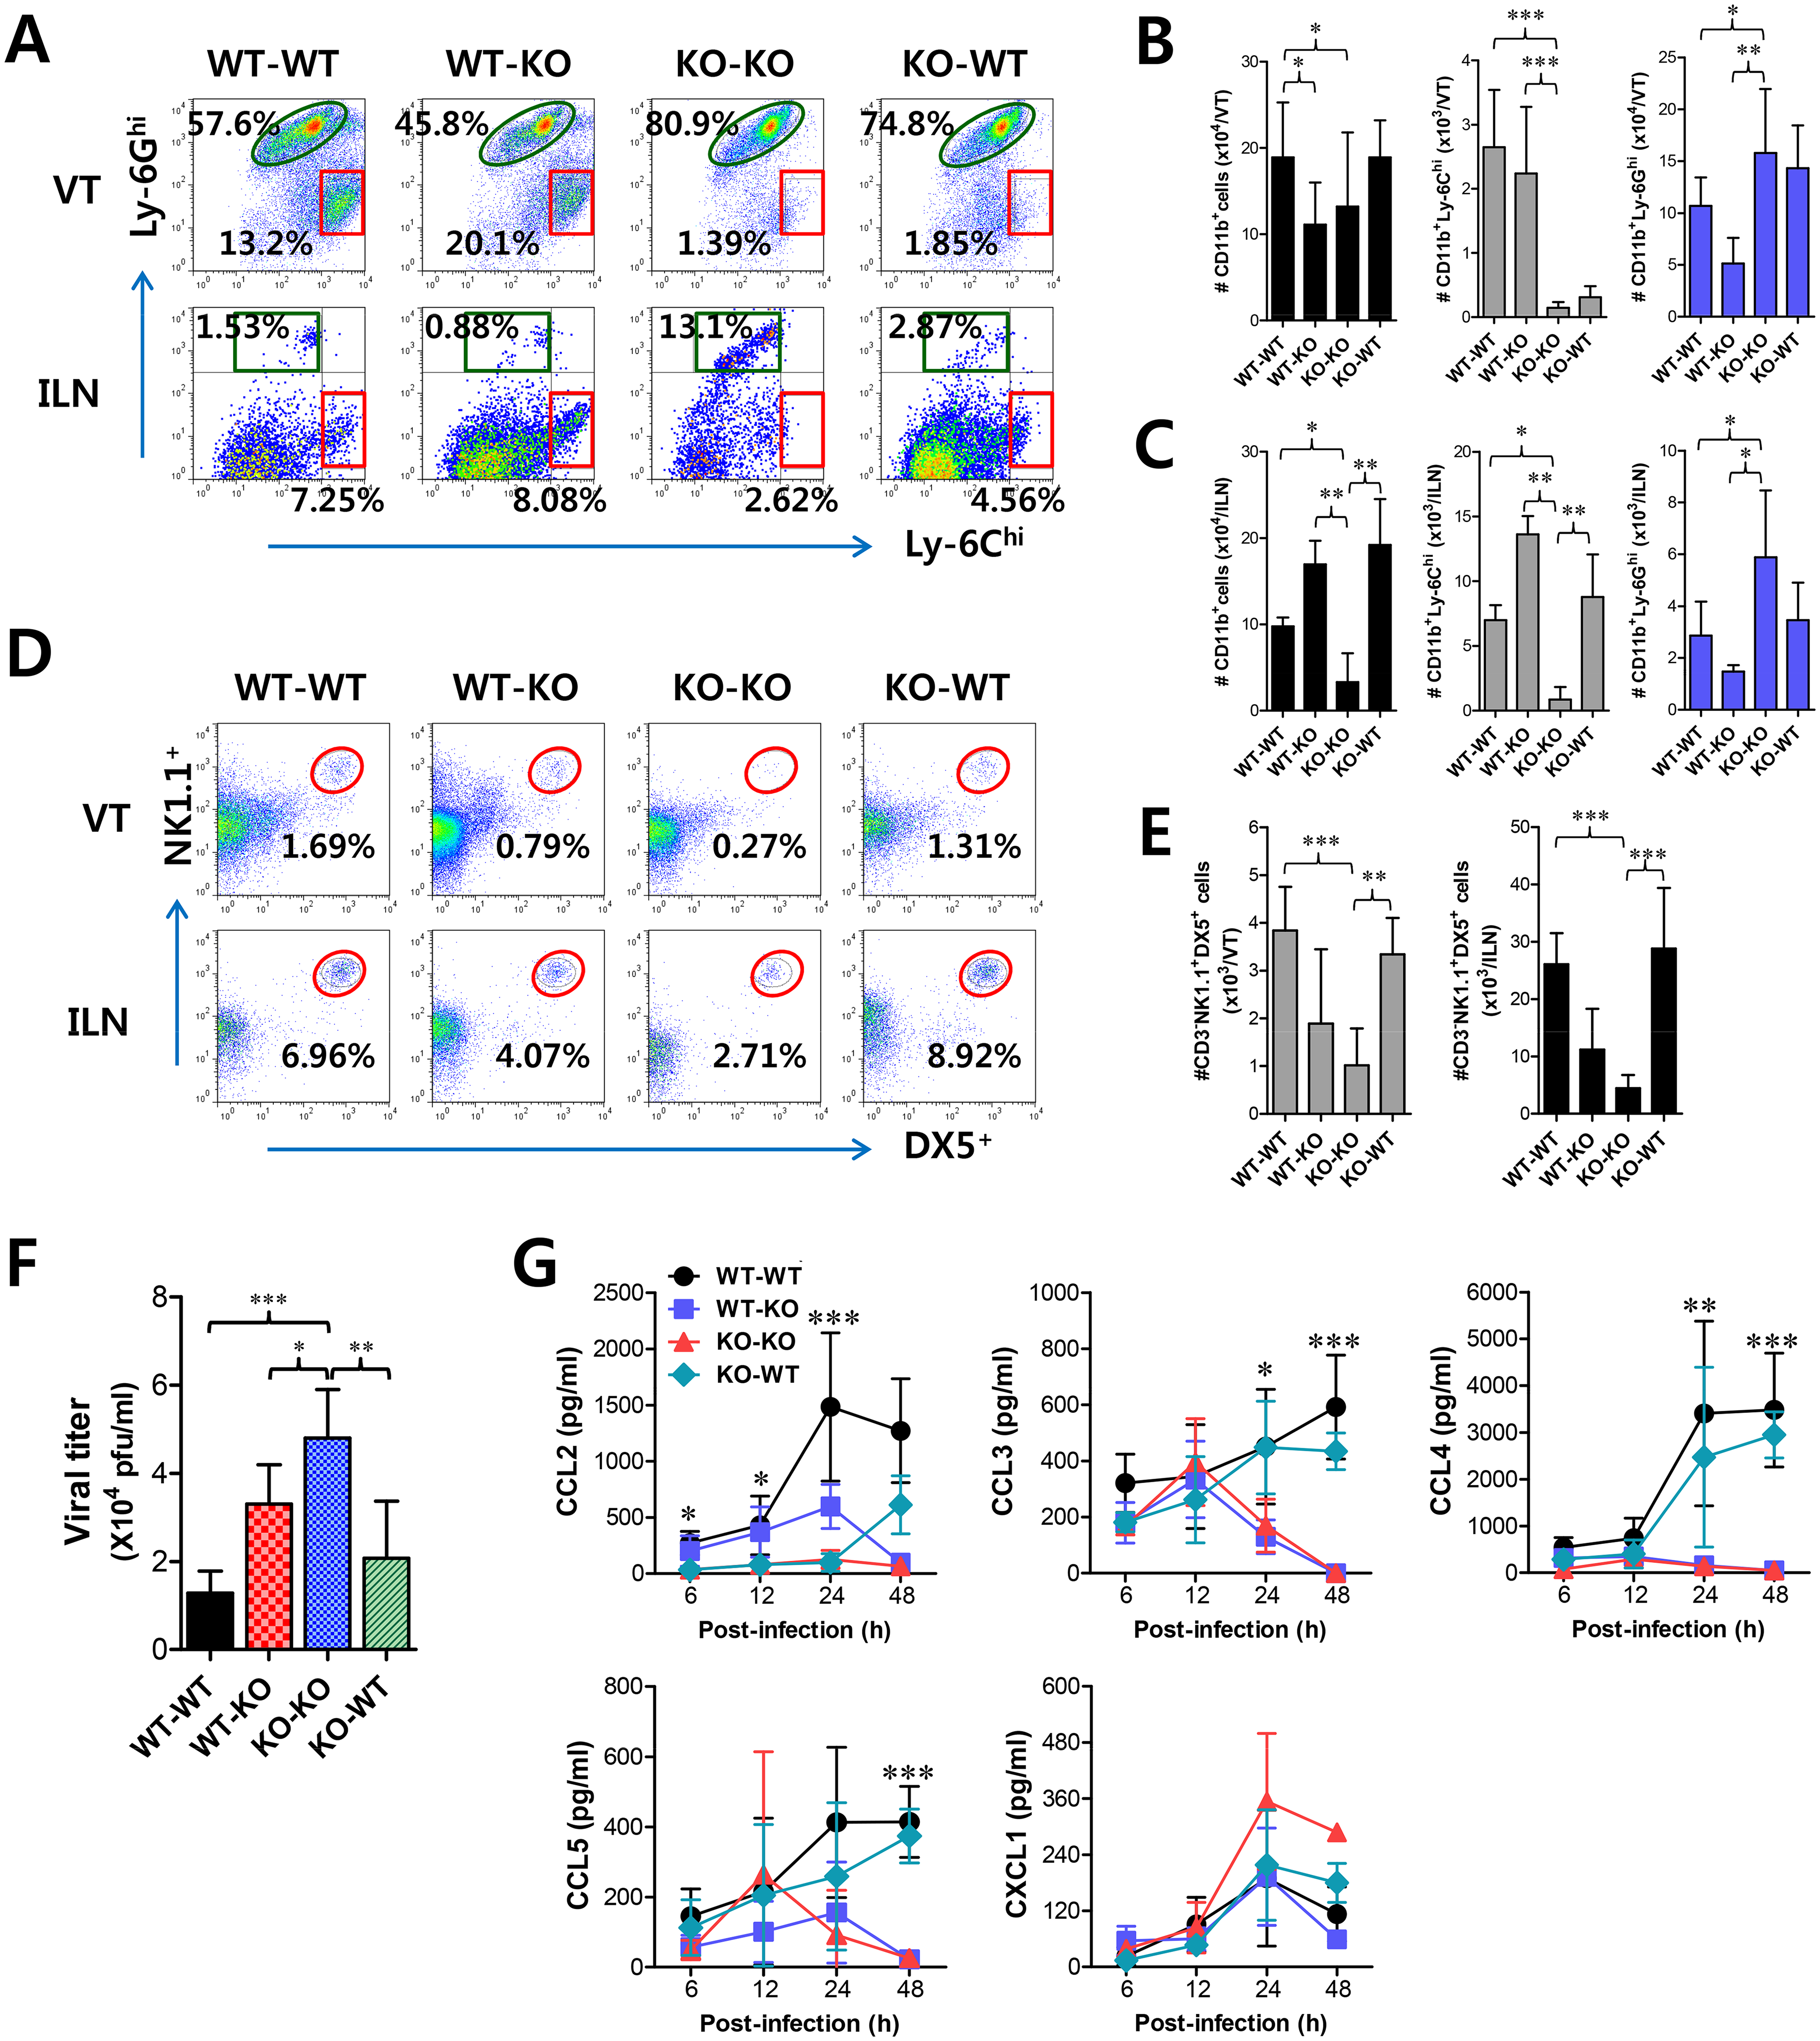 IFN-I signaling on infiltrated leukocytes derived from HSC lineage is required for normal recruitment of CD11b<sup>+</sup>Ly-6C<sup>hi</sup> monocytes, but not NK cells.